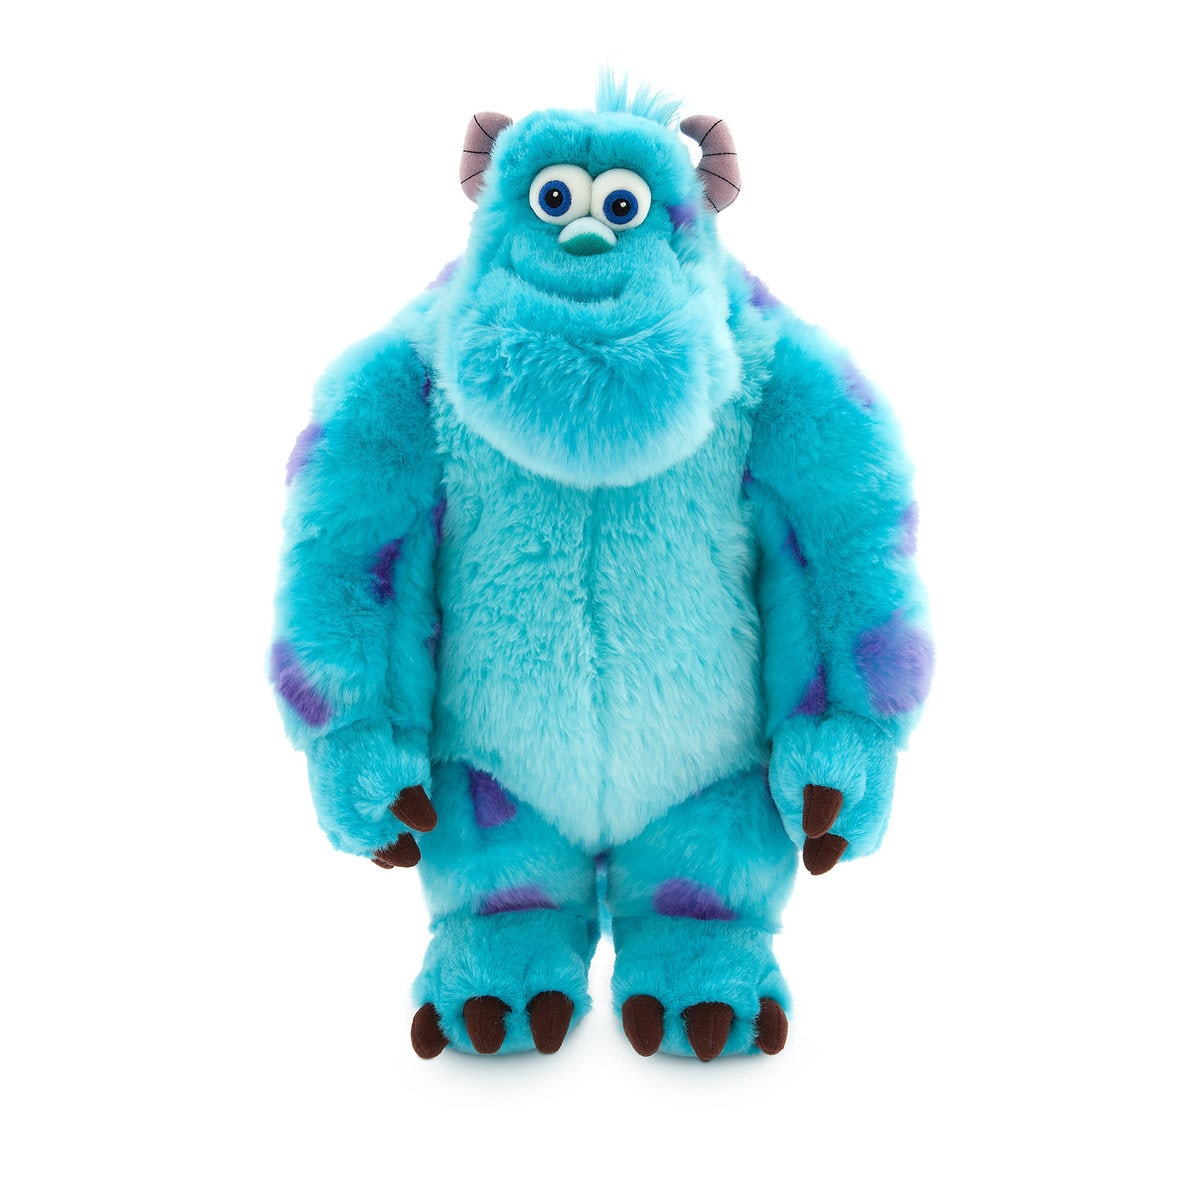 686dd5dc5068 Product Image of Sulley Plush - Monsters